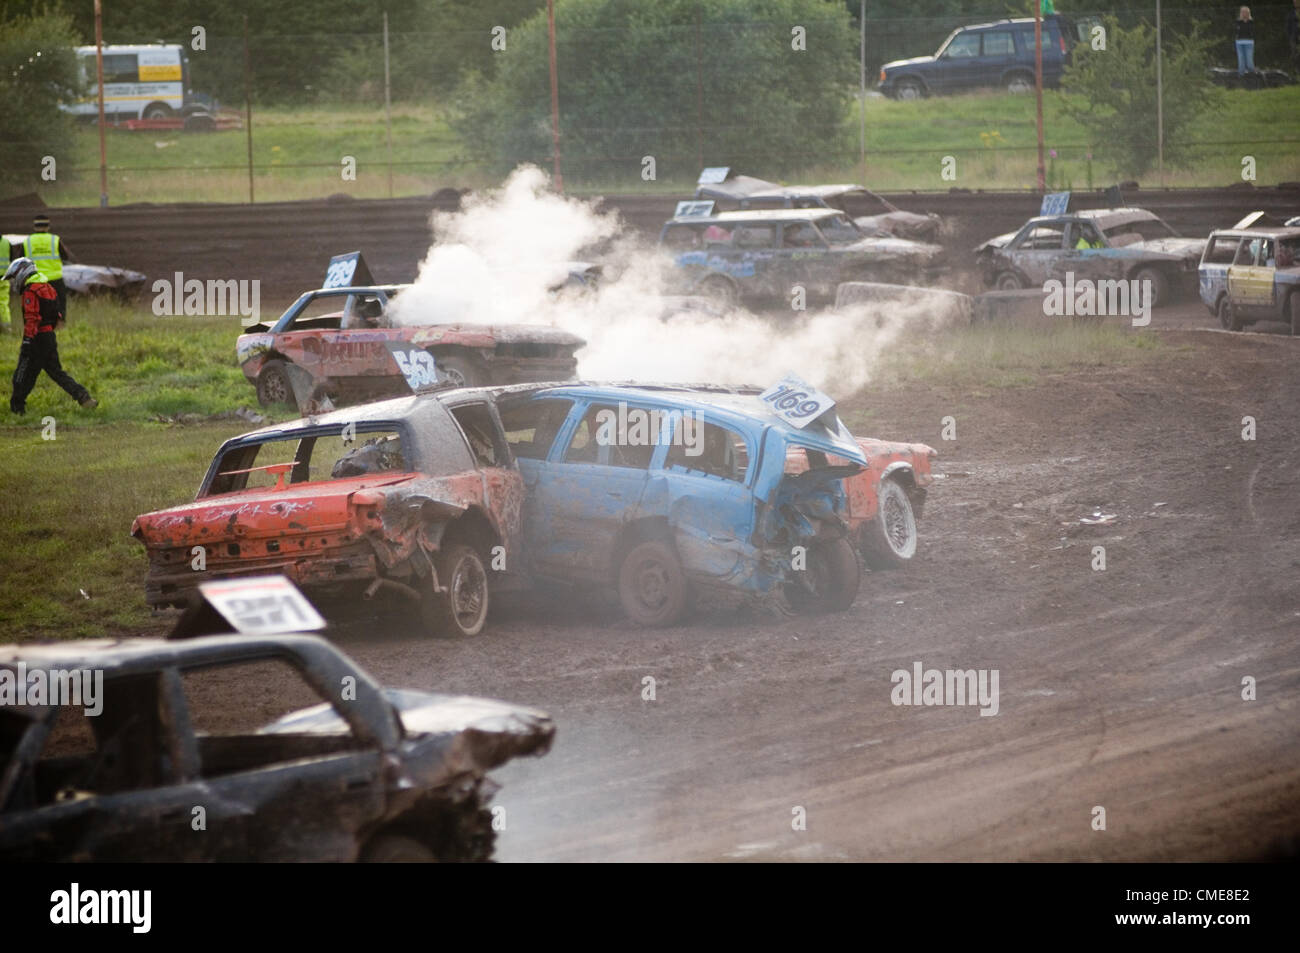 Banger race racing crash sequence track stock cars car crashes limo ...